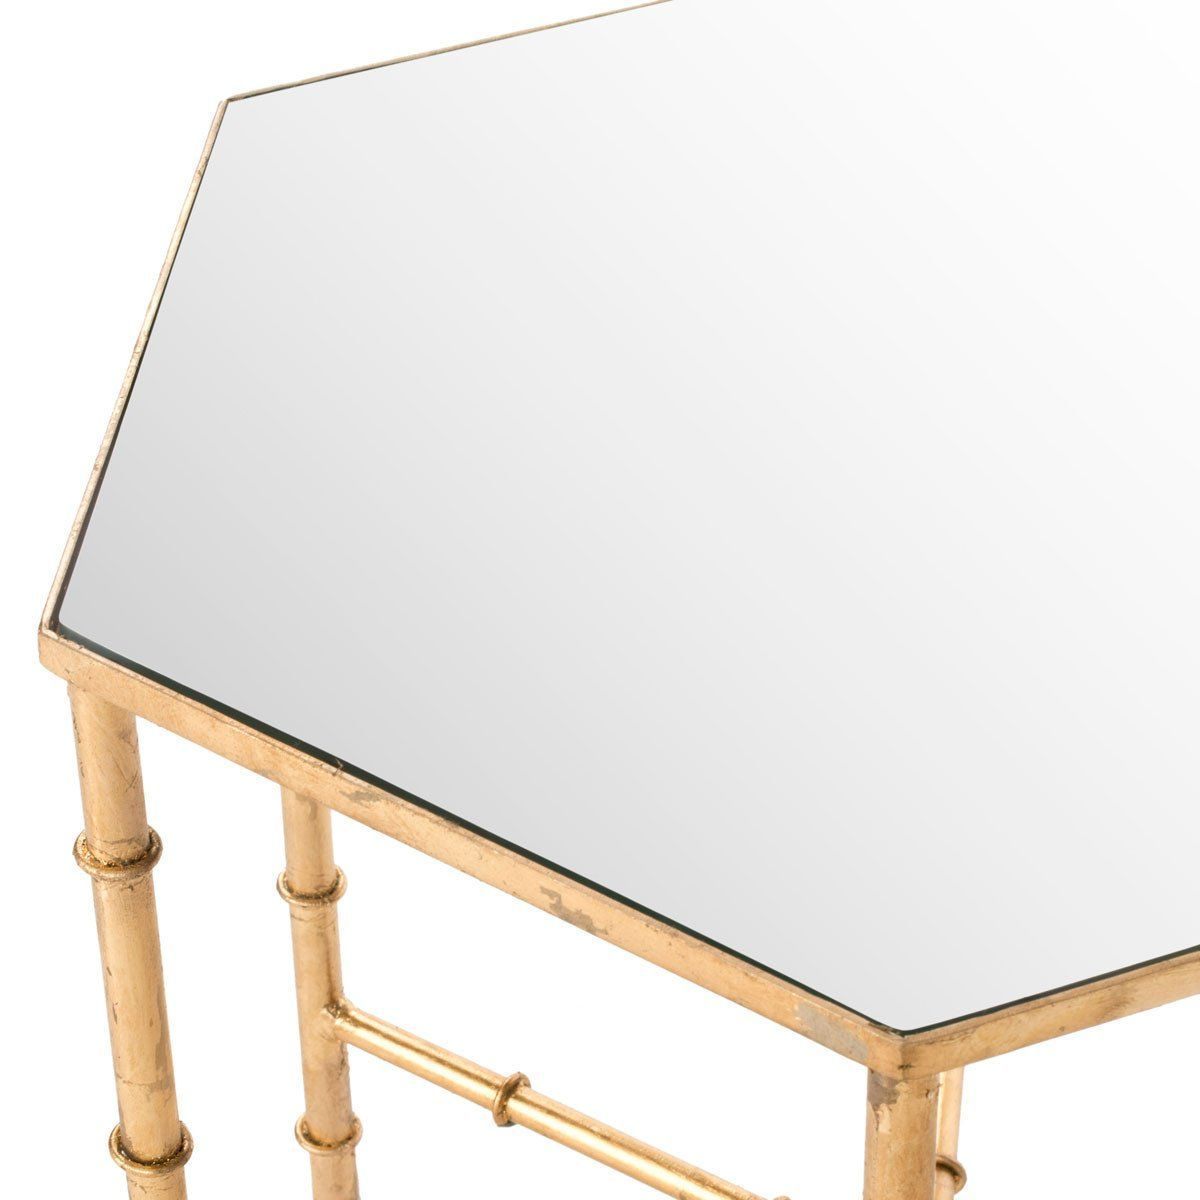 safavieh kerri accent table gold mirror top side tables goldmirror and target chalk paint narrow sofa kitchen dining room leather sectional edmonton west elm standing lamp box